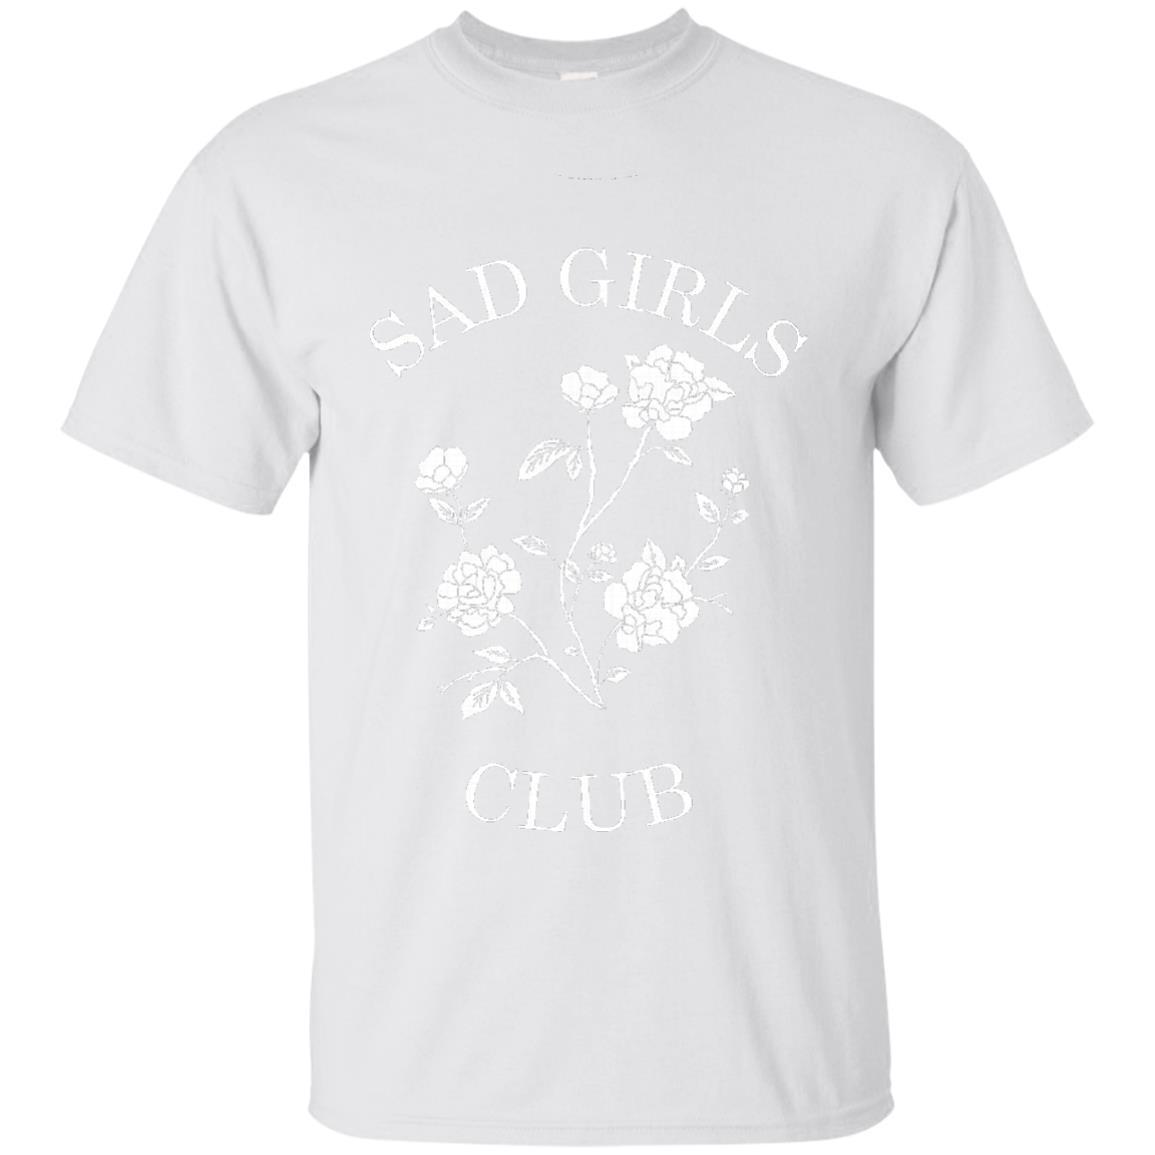 Womens Sad Girls Club popular internet meme tshirt - T-Shirt